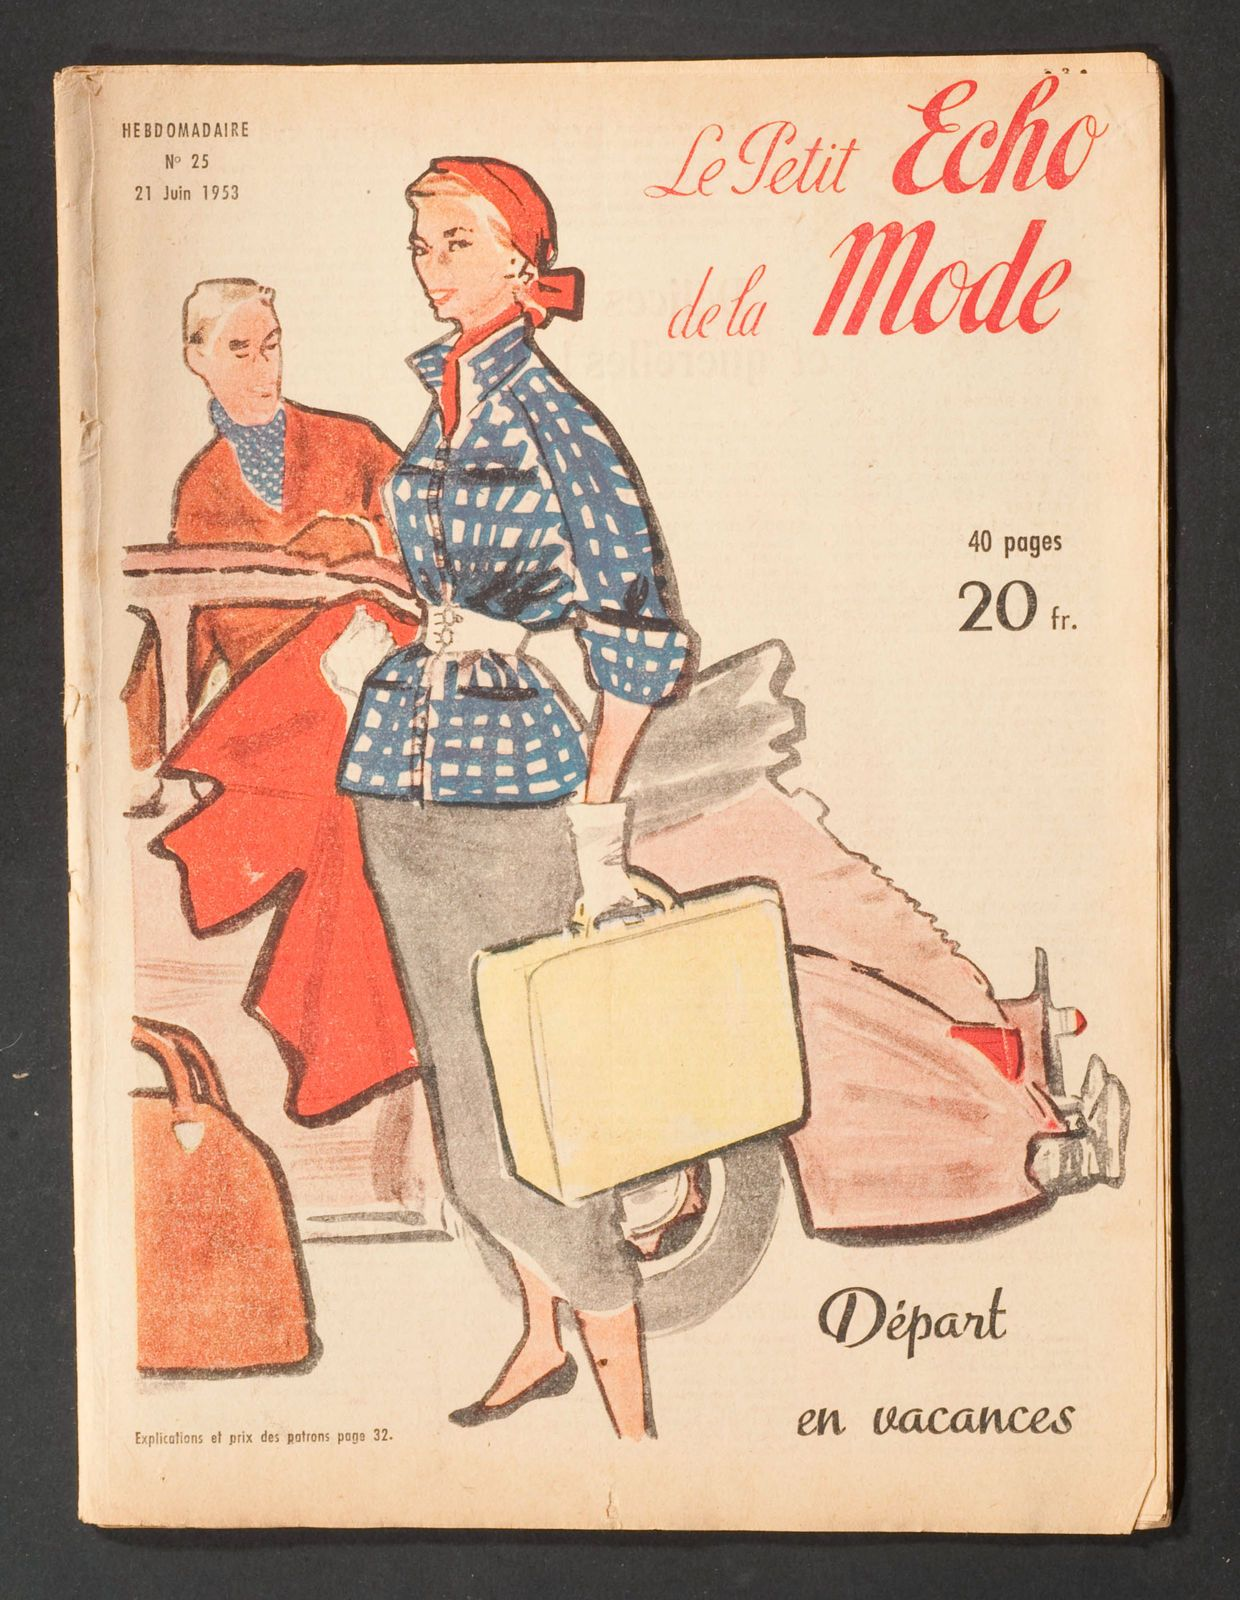 'ECHO DE LA MODE' FRENCH NEWSPAPER HOLIDAY ISSUE 21 JUNE 1953